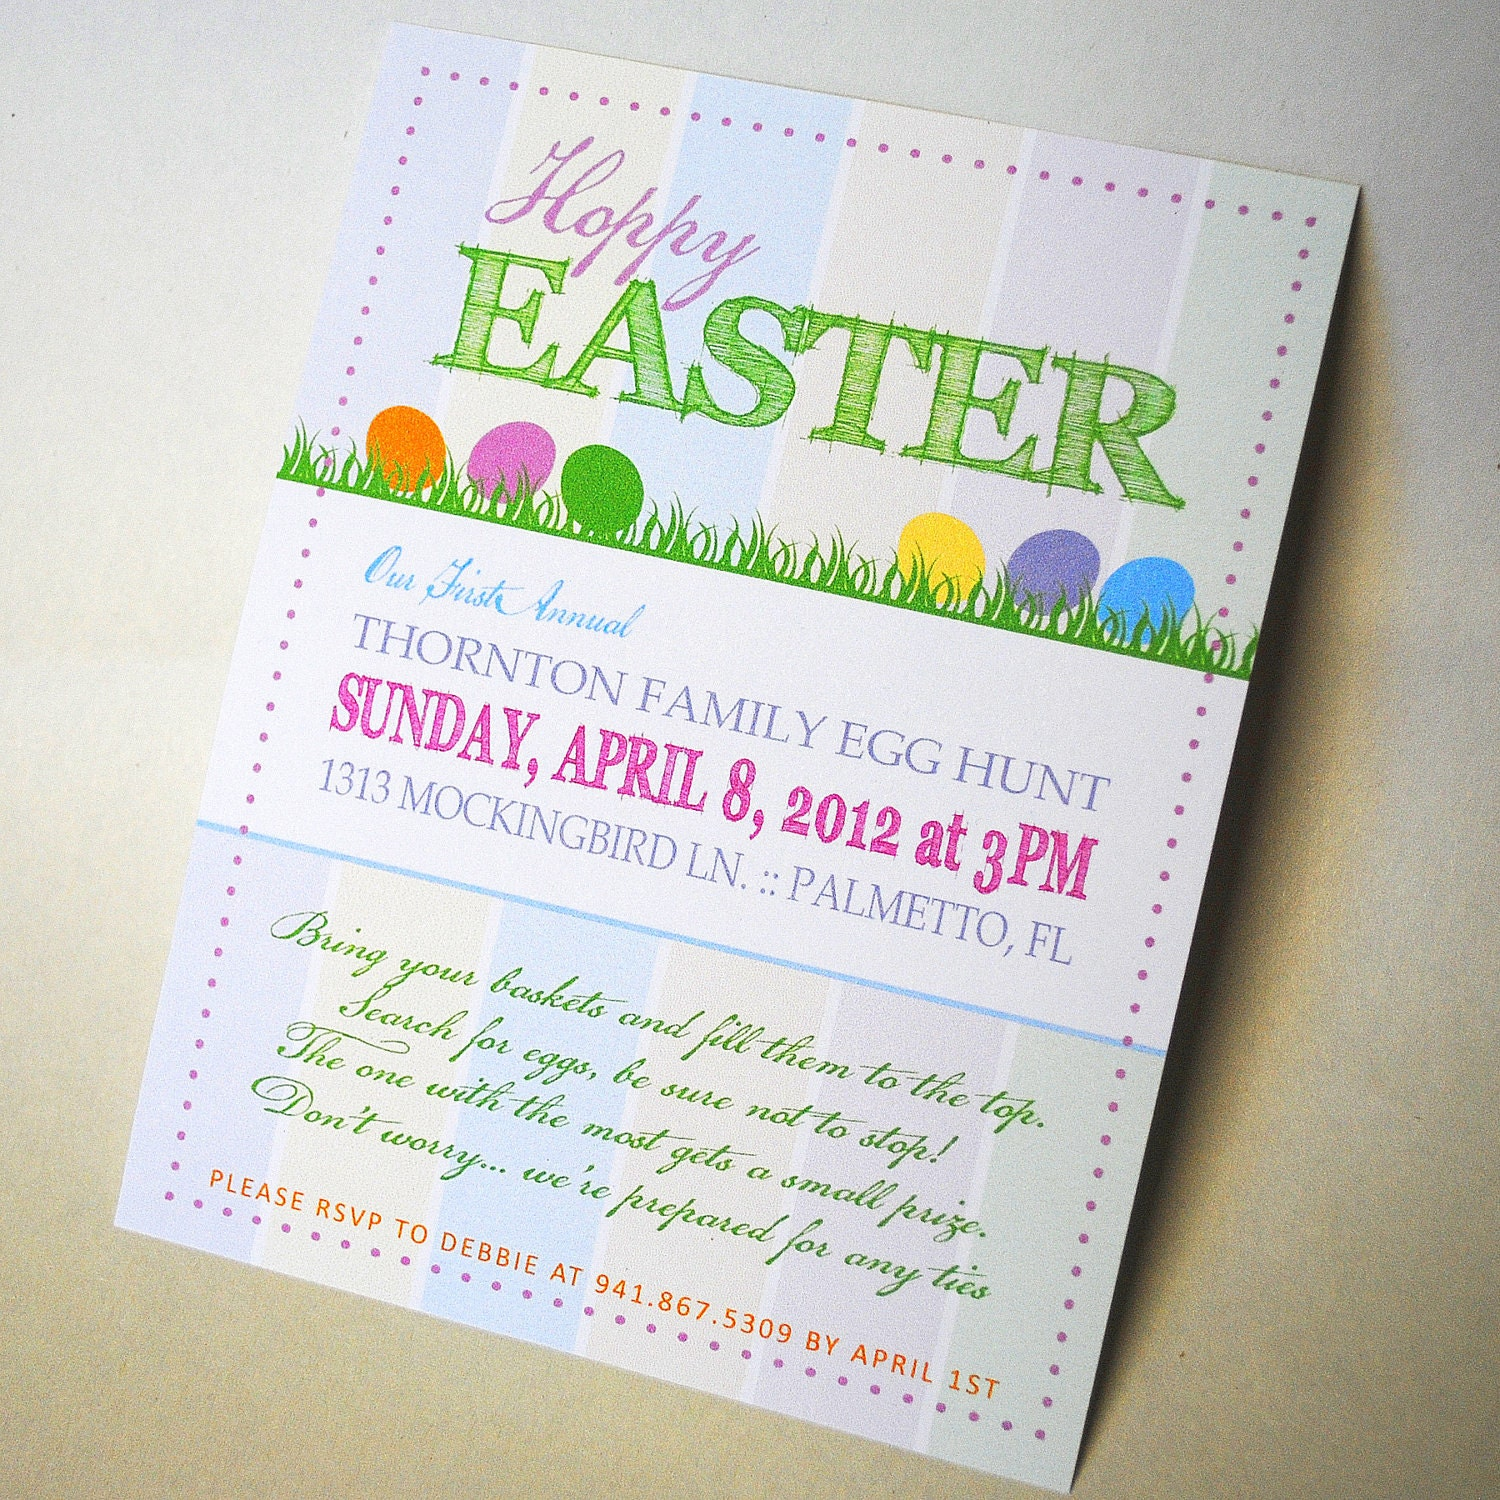 Hoppy Easter, Egg Hunt Invitation with pastel background and colorful eggs - Custom, Personalized and Printable - LisaKaydesigns